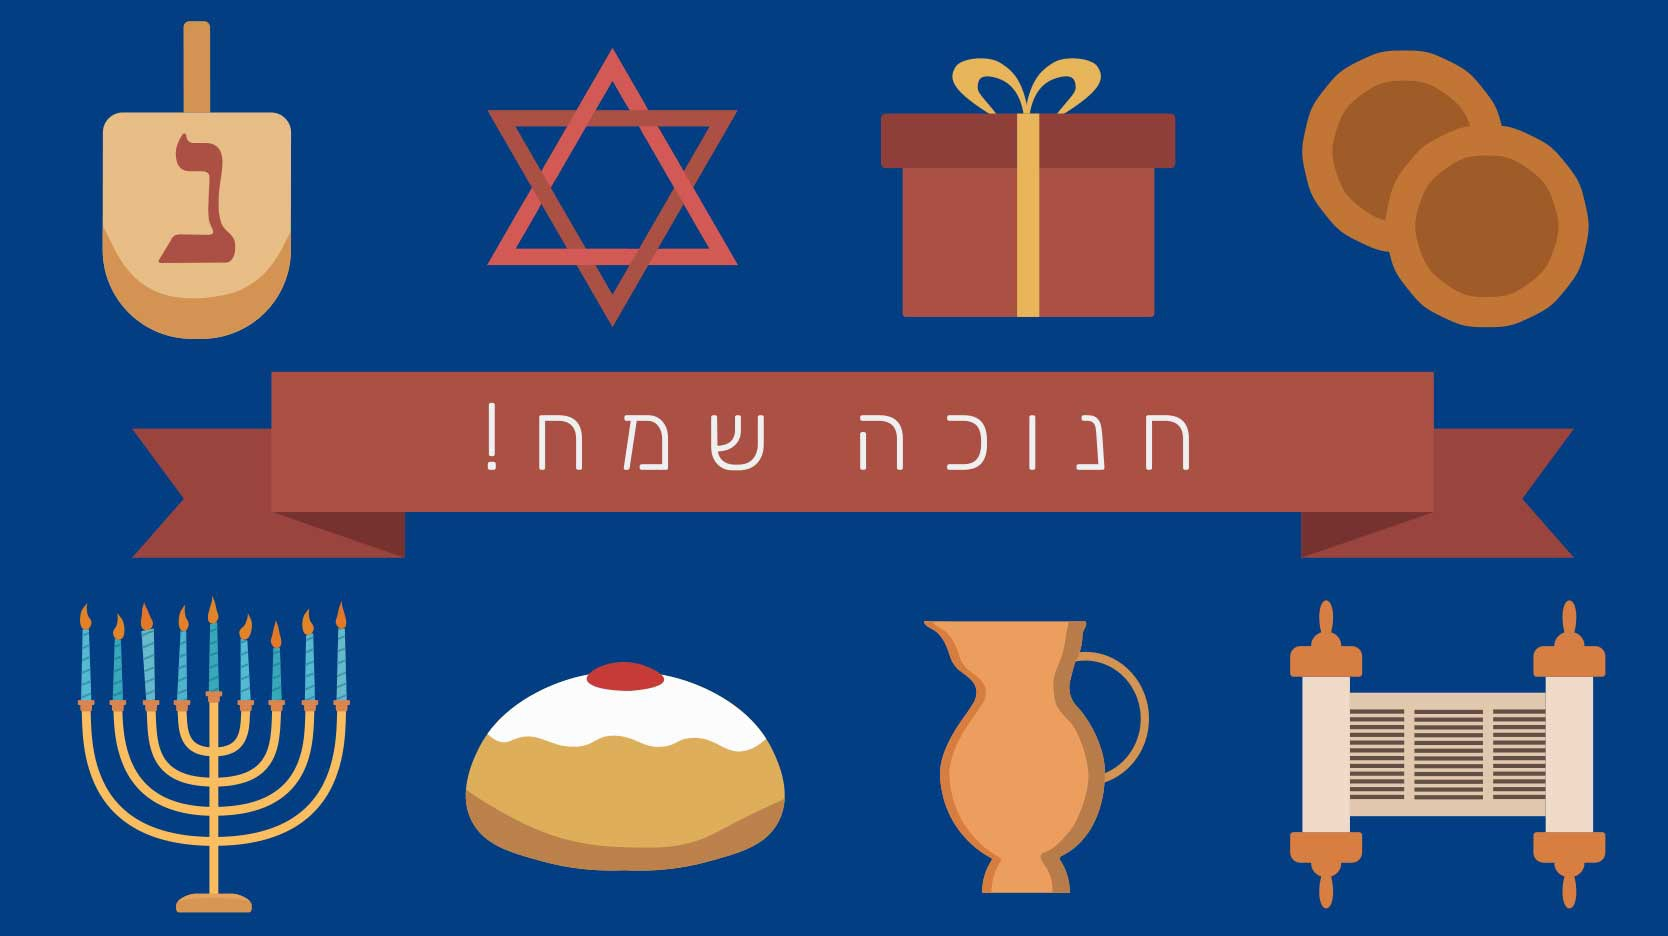 hanukkah greetings and wishes items